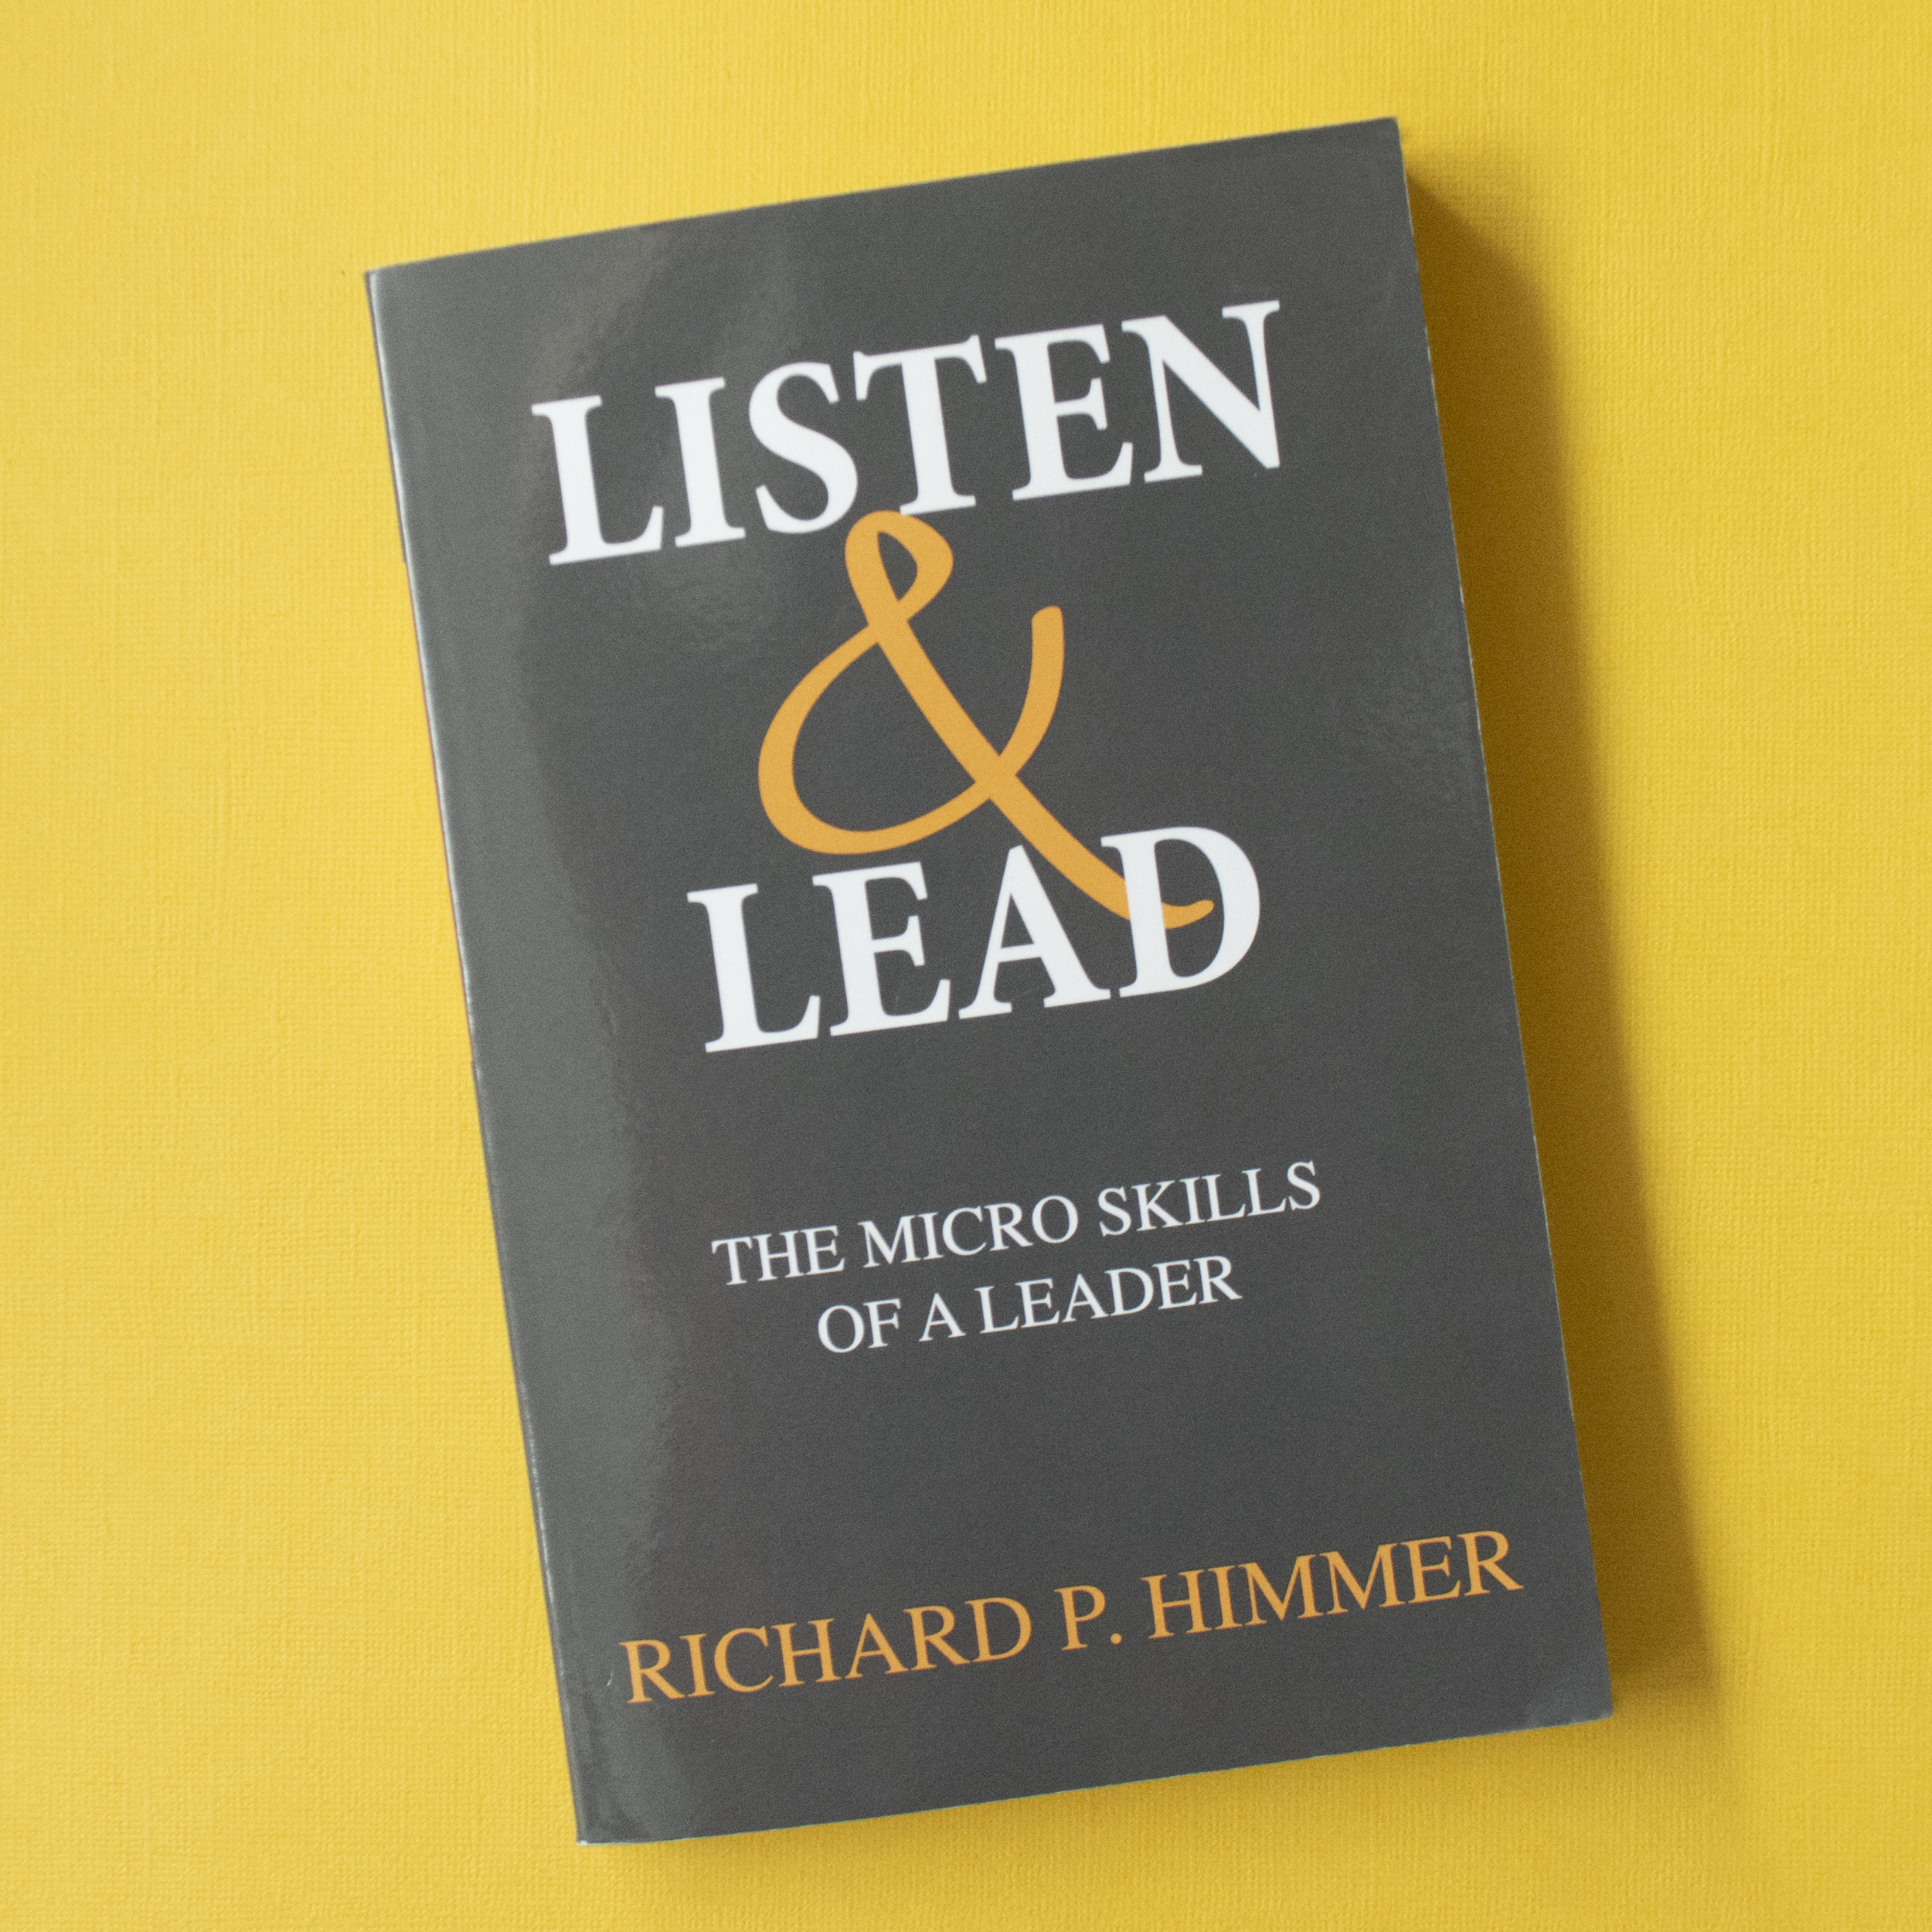 Listen and Lead: The Micro Skills of a Leader - Richard P. Himmer - The critical factor in determining your success has little to do with your IQ, education, or technical skills. It lies in your ability to excel in interpersonal relationships.Authentic leadership is the ability to provide direction, hold boundaries, delegate thinking, and positively influence others without positional authority. That means anyone can become an effective leader by practicing the skills found in this book.In Listen and Lead: The Micro Skills of a Leader, you'll learn valuable, universal truths about communication that will transform your relationships at work and in every area of your life.To learn more, visit www.richardhimmer.com